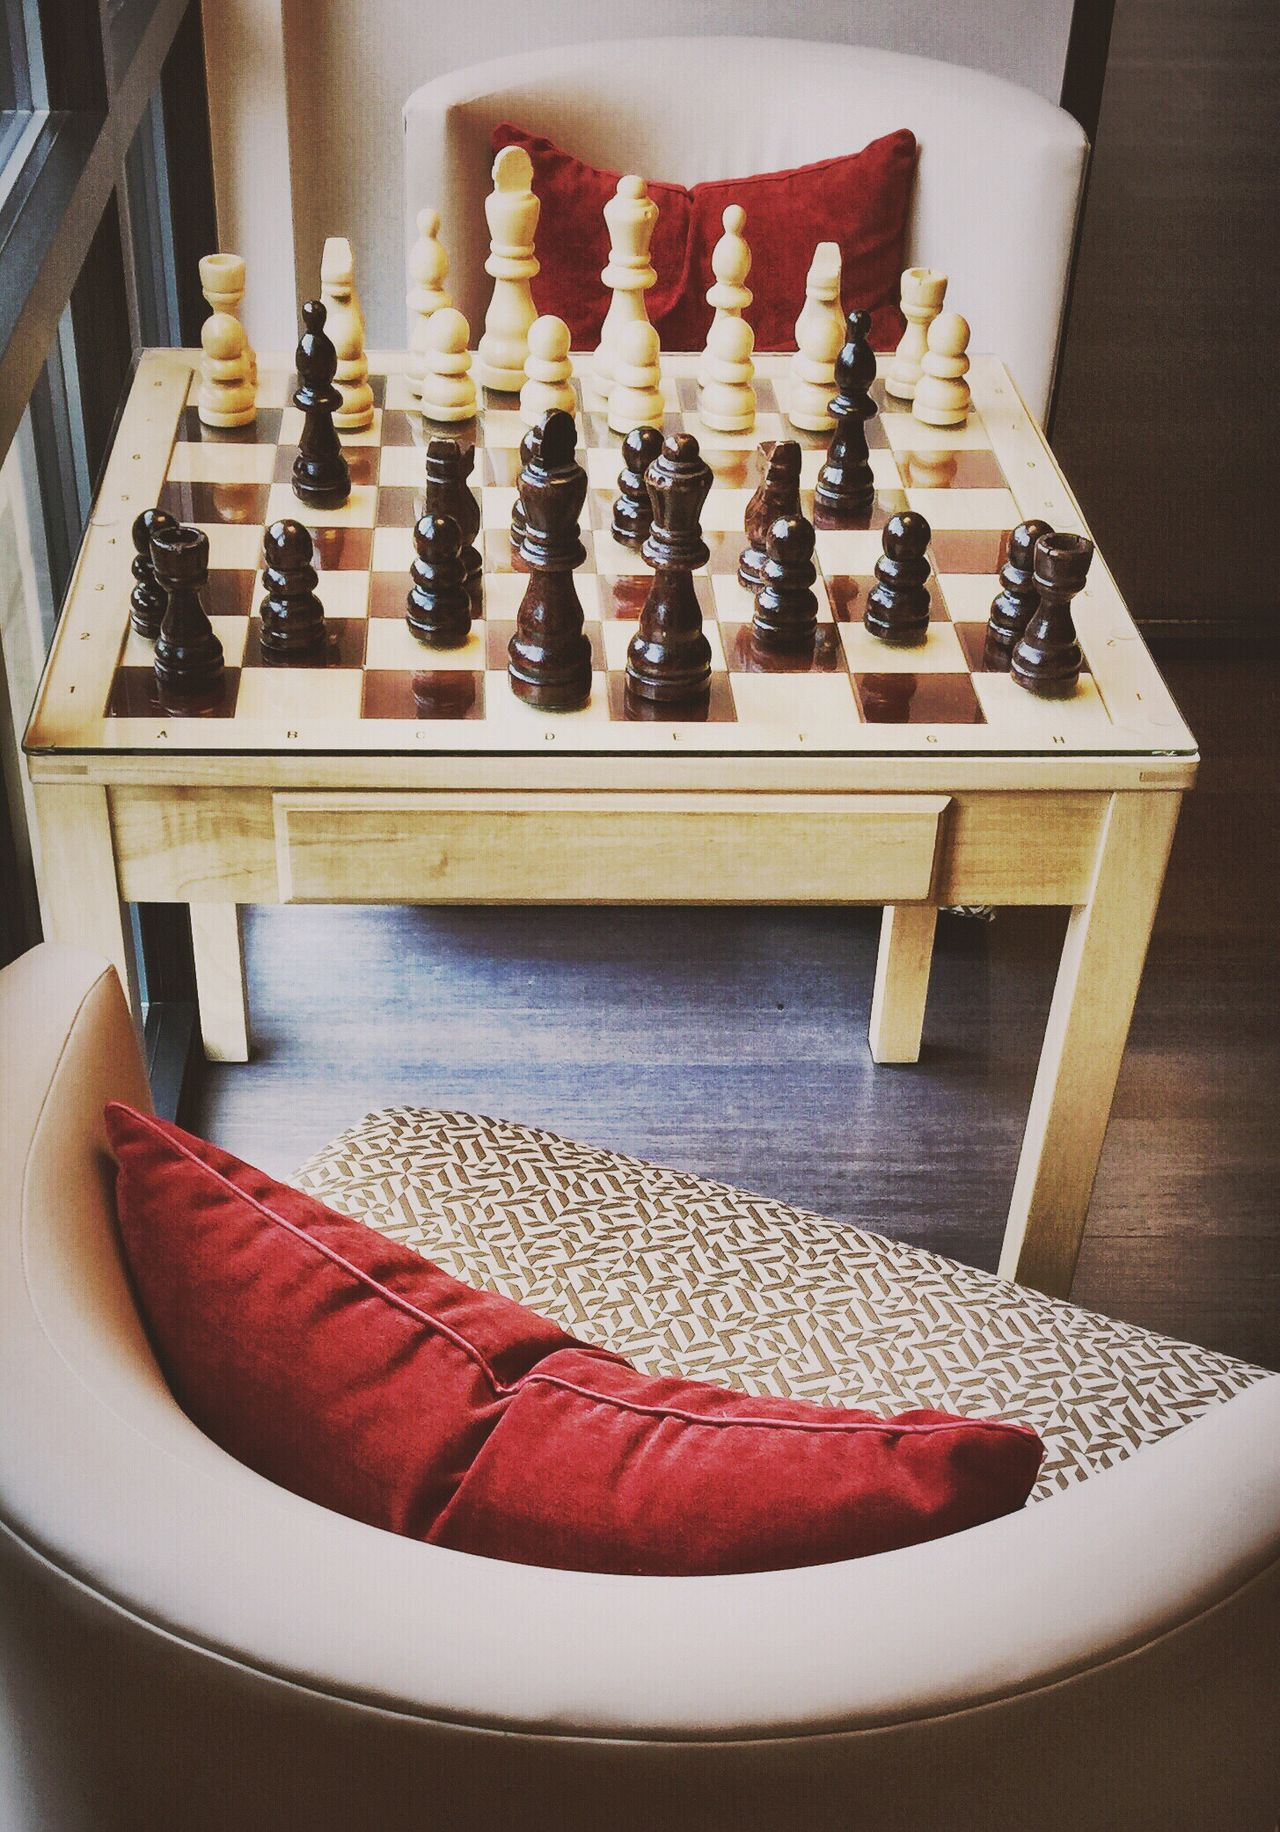 Chess Board Chess Chess Piece Chessboard Chesspieces Chess Set Chessgame Chess Game Chess Pieces